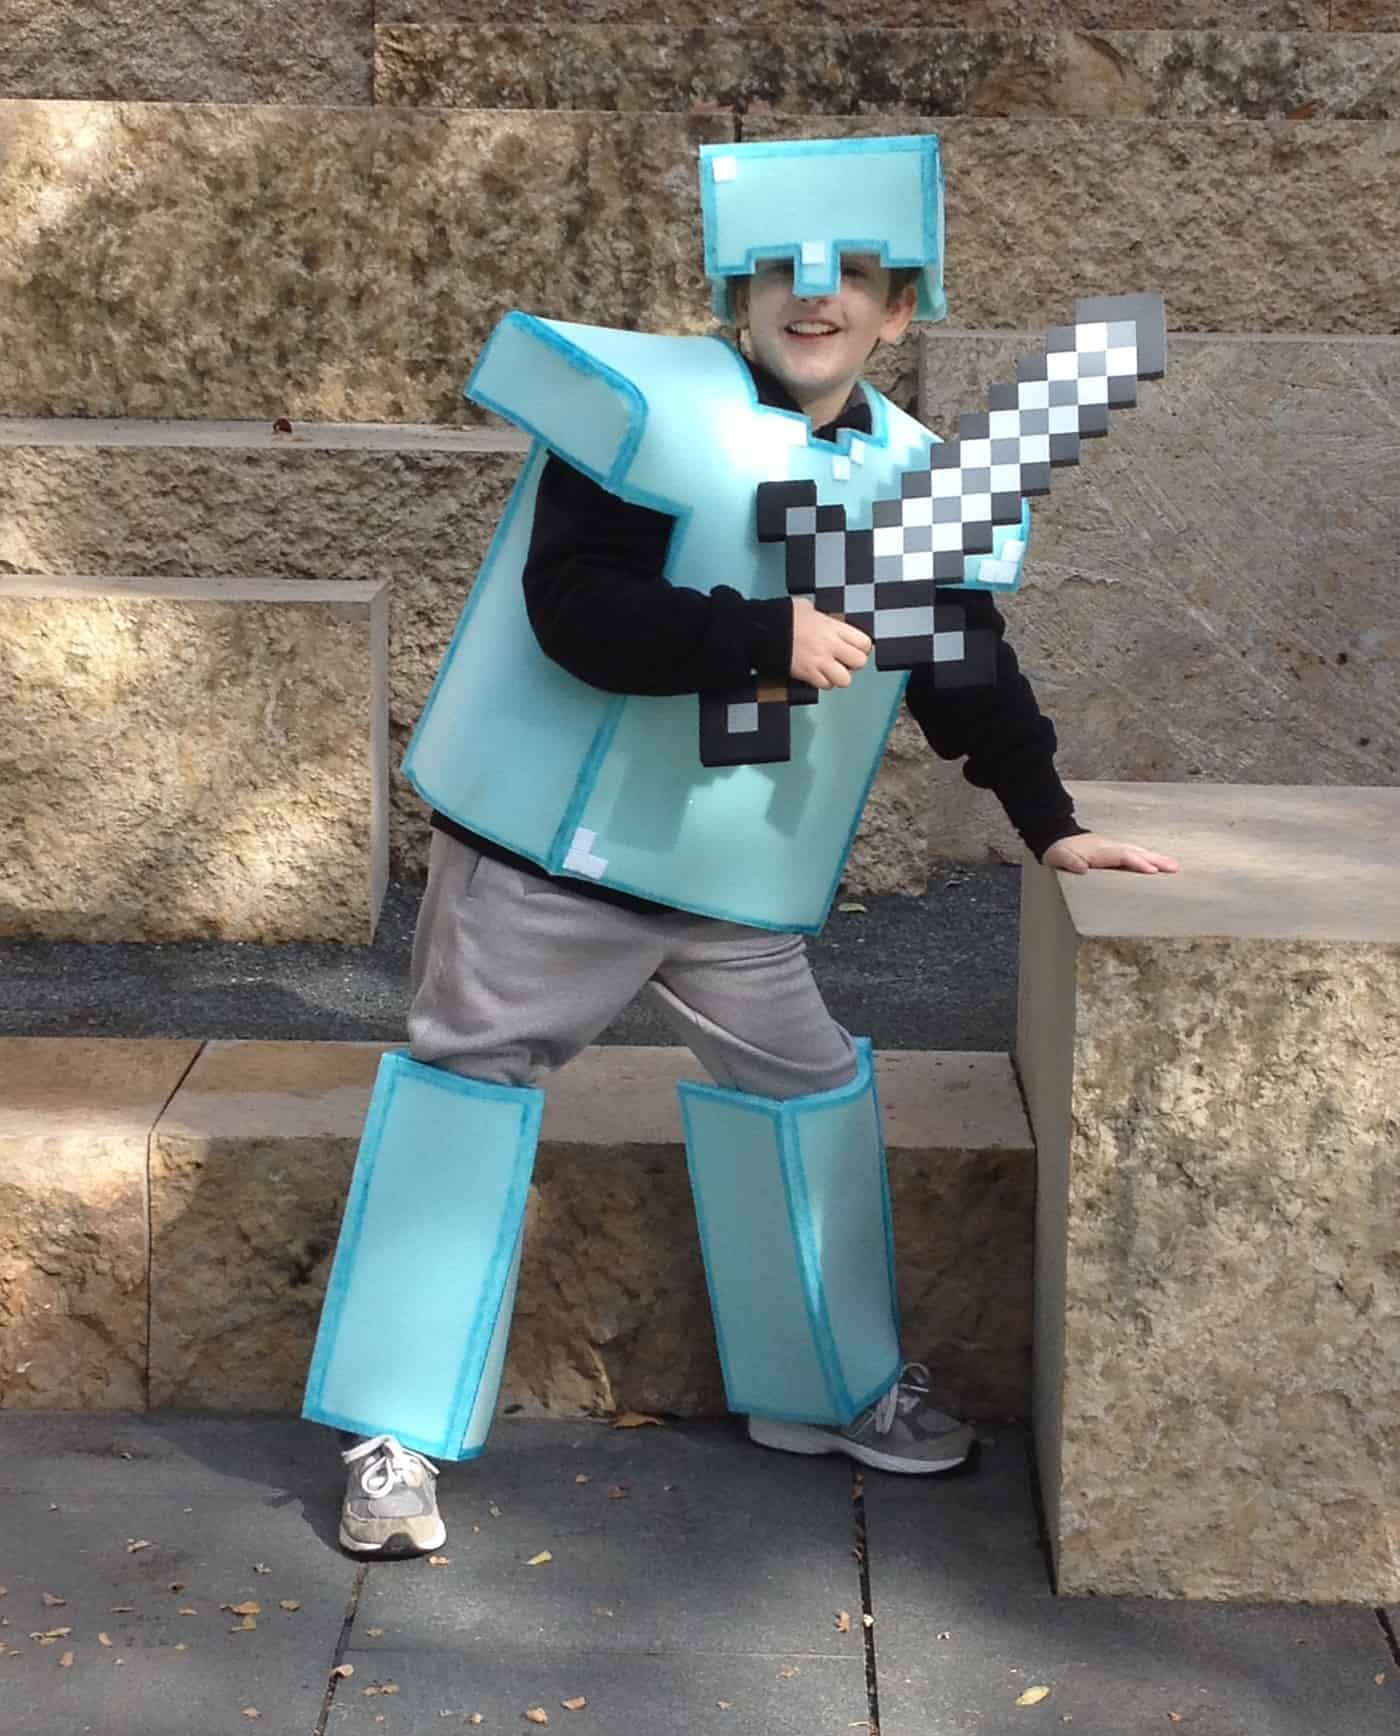 kid in full minecraft armor made from foam